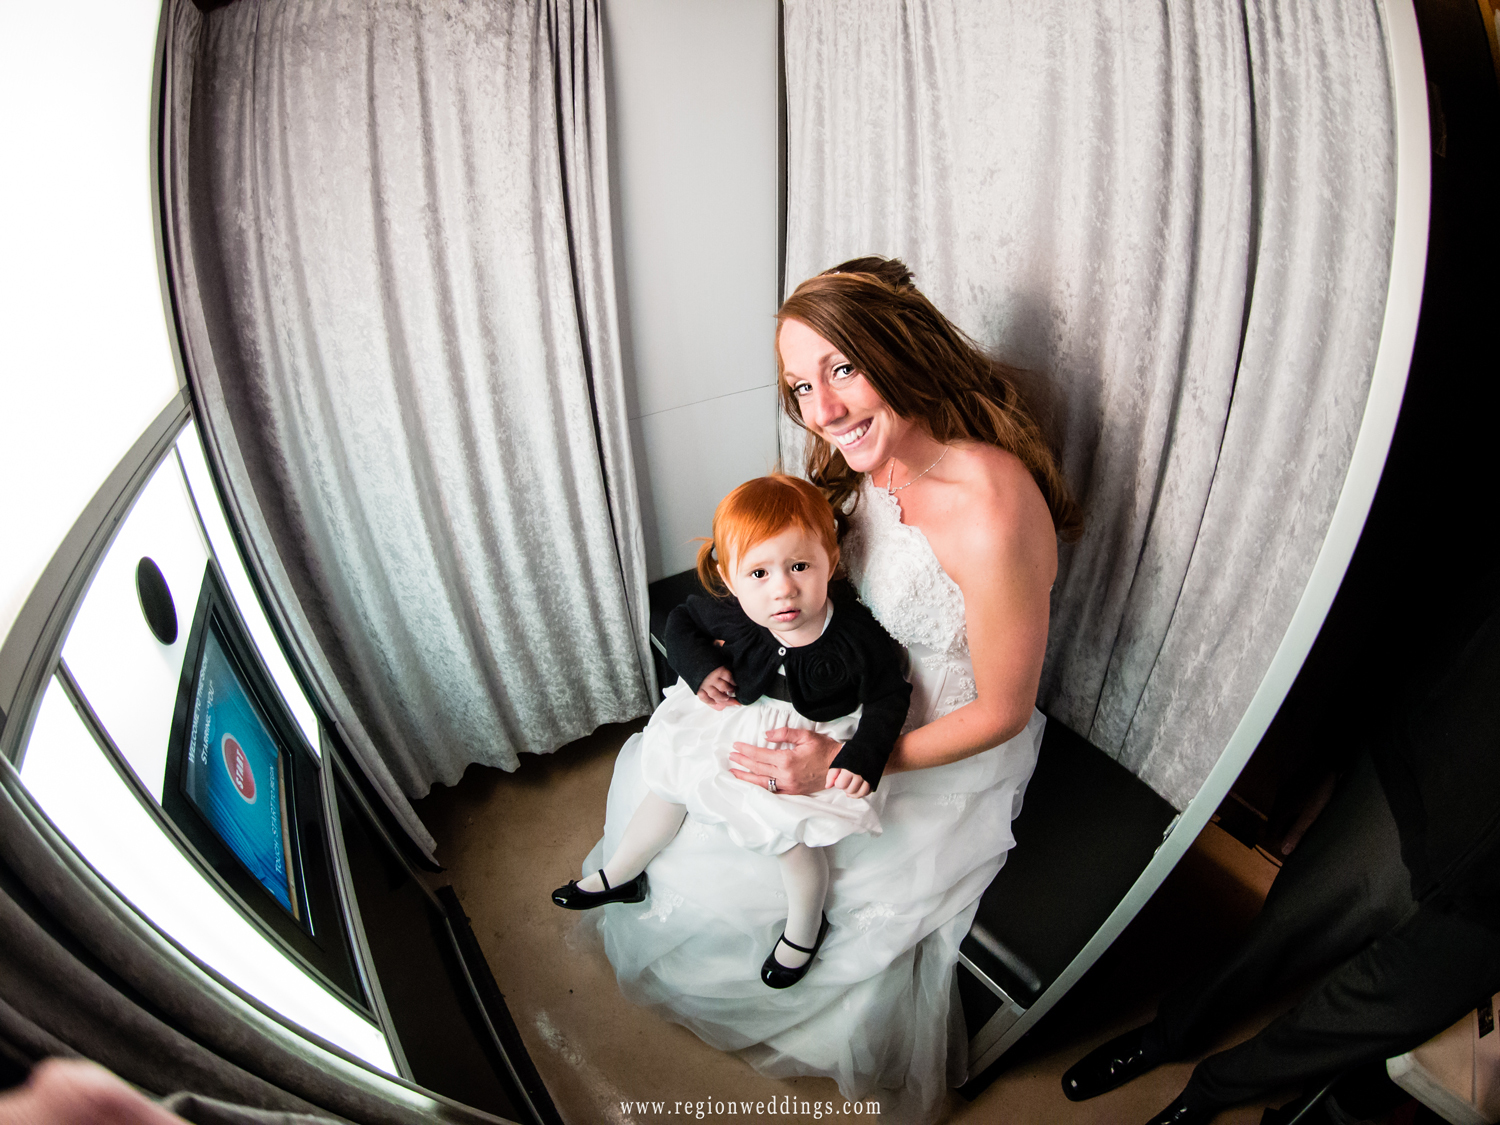 Mom and daughter enjoy the Memories in Minutes Photo booth.